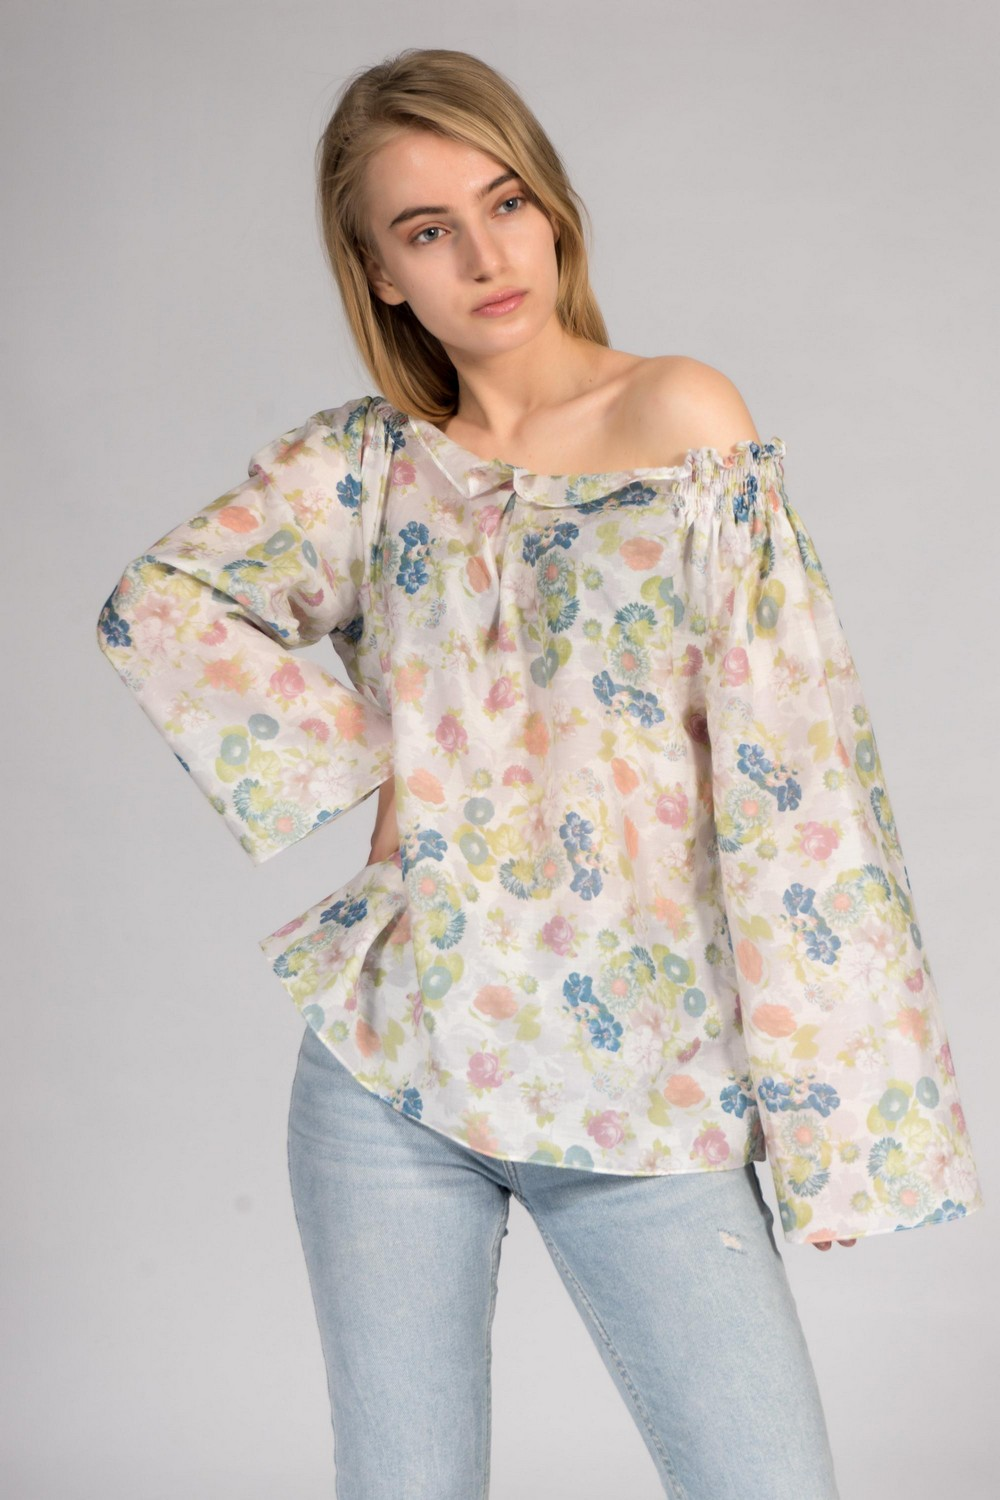 Buy Summer cotton floral pattern women blouse, Long sleeve blouse, Сomfortable casual ladies blouse